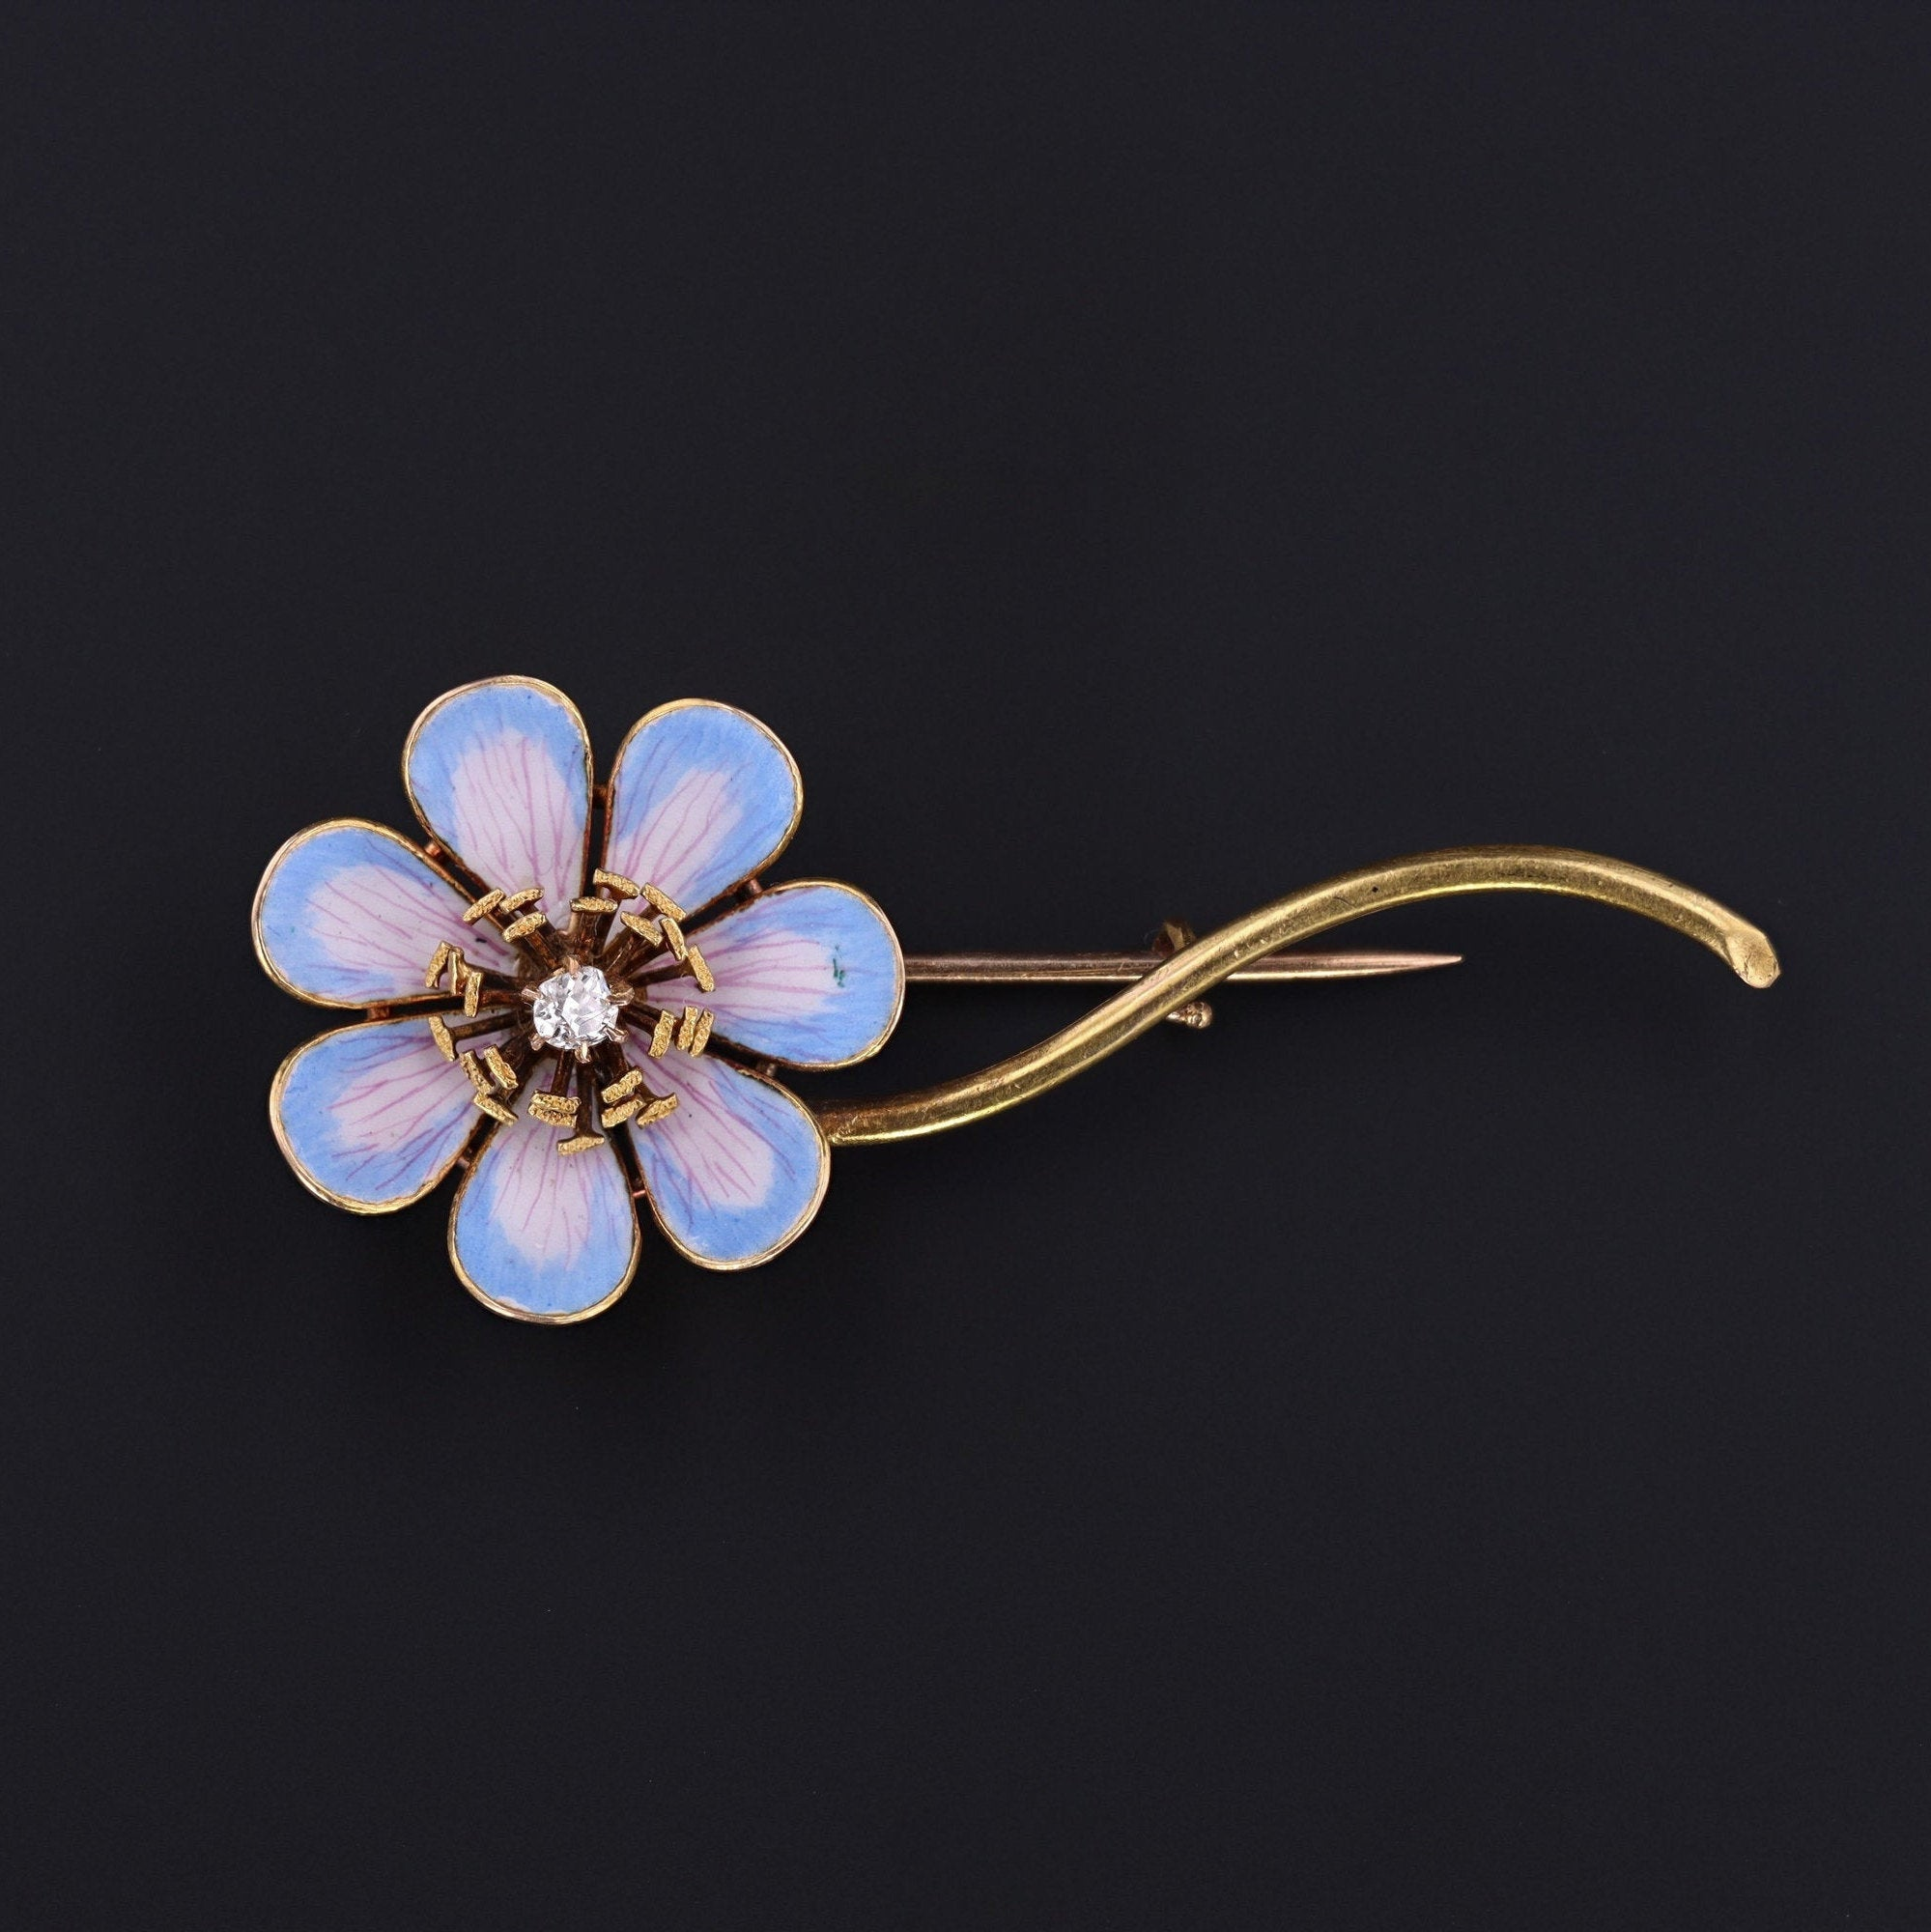 Enamel Flower Brooch | 18k Gold Flower Brooch | Blue Enamel Flower Brooch | Antique Brooch | Antique Pin